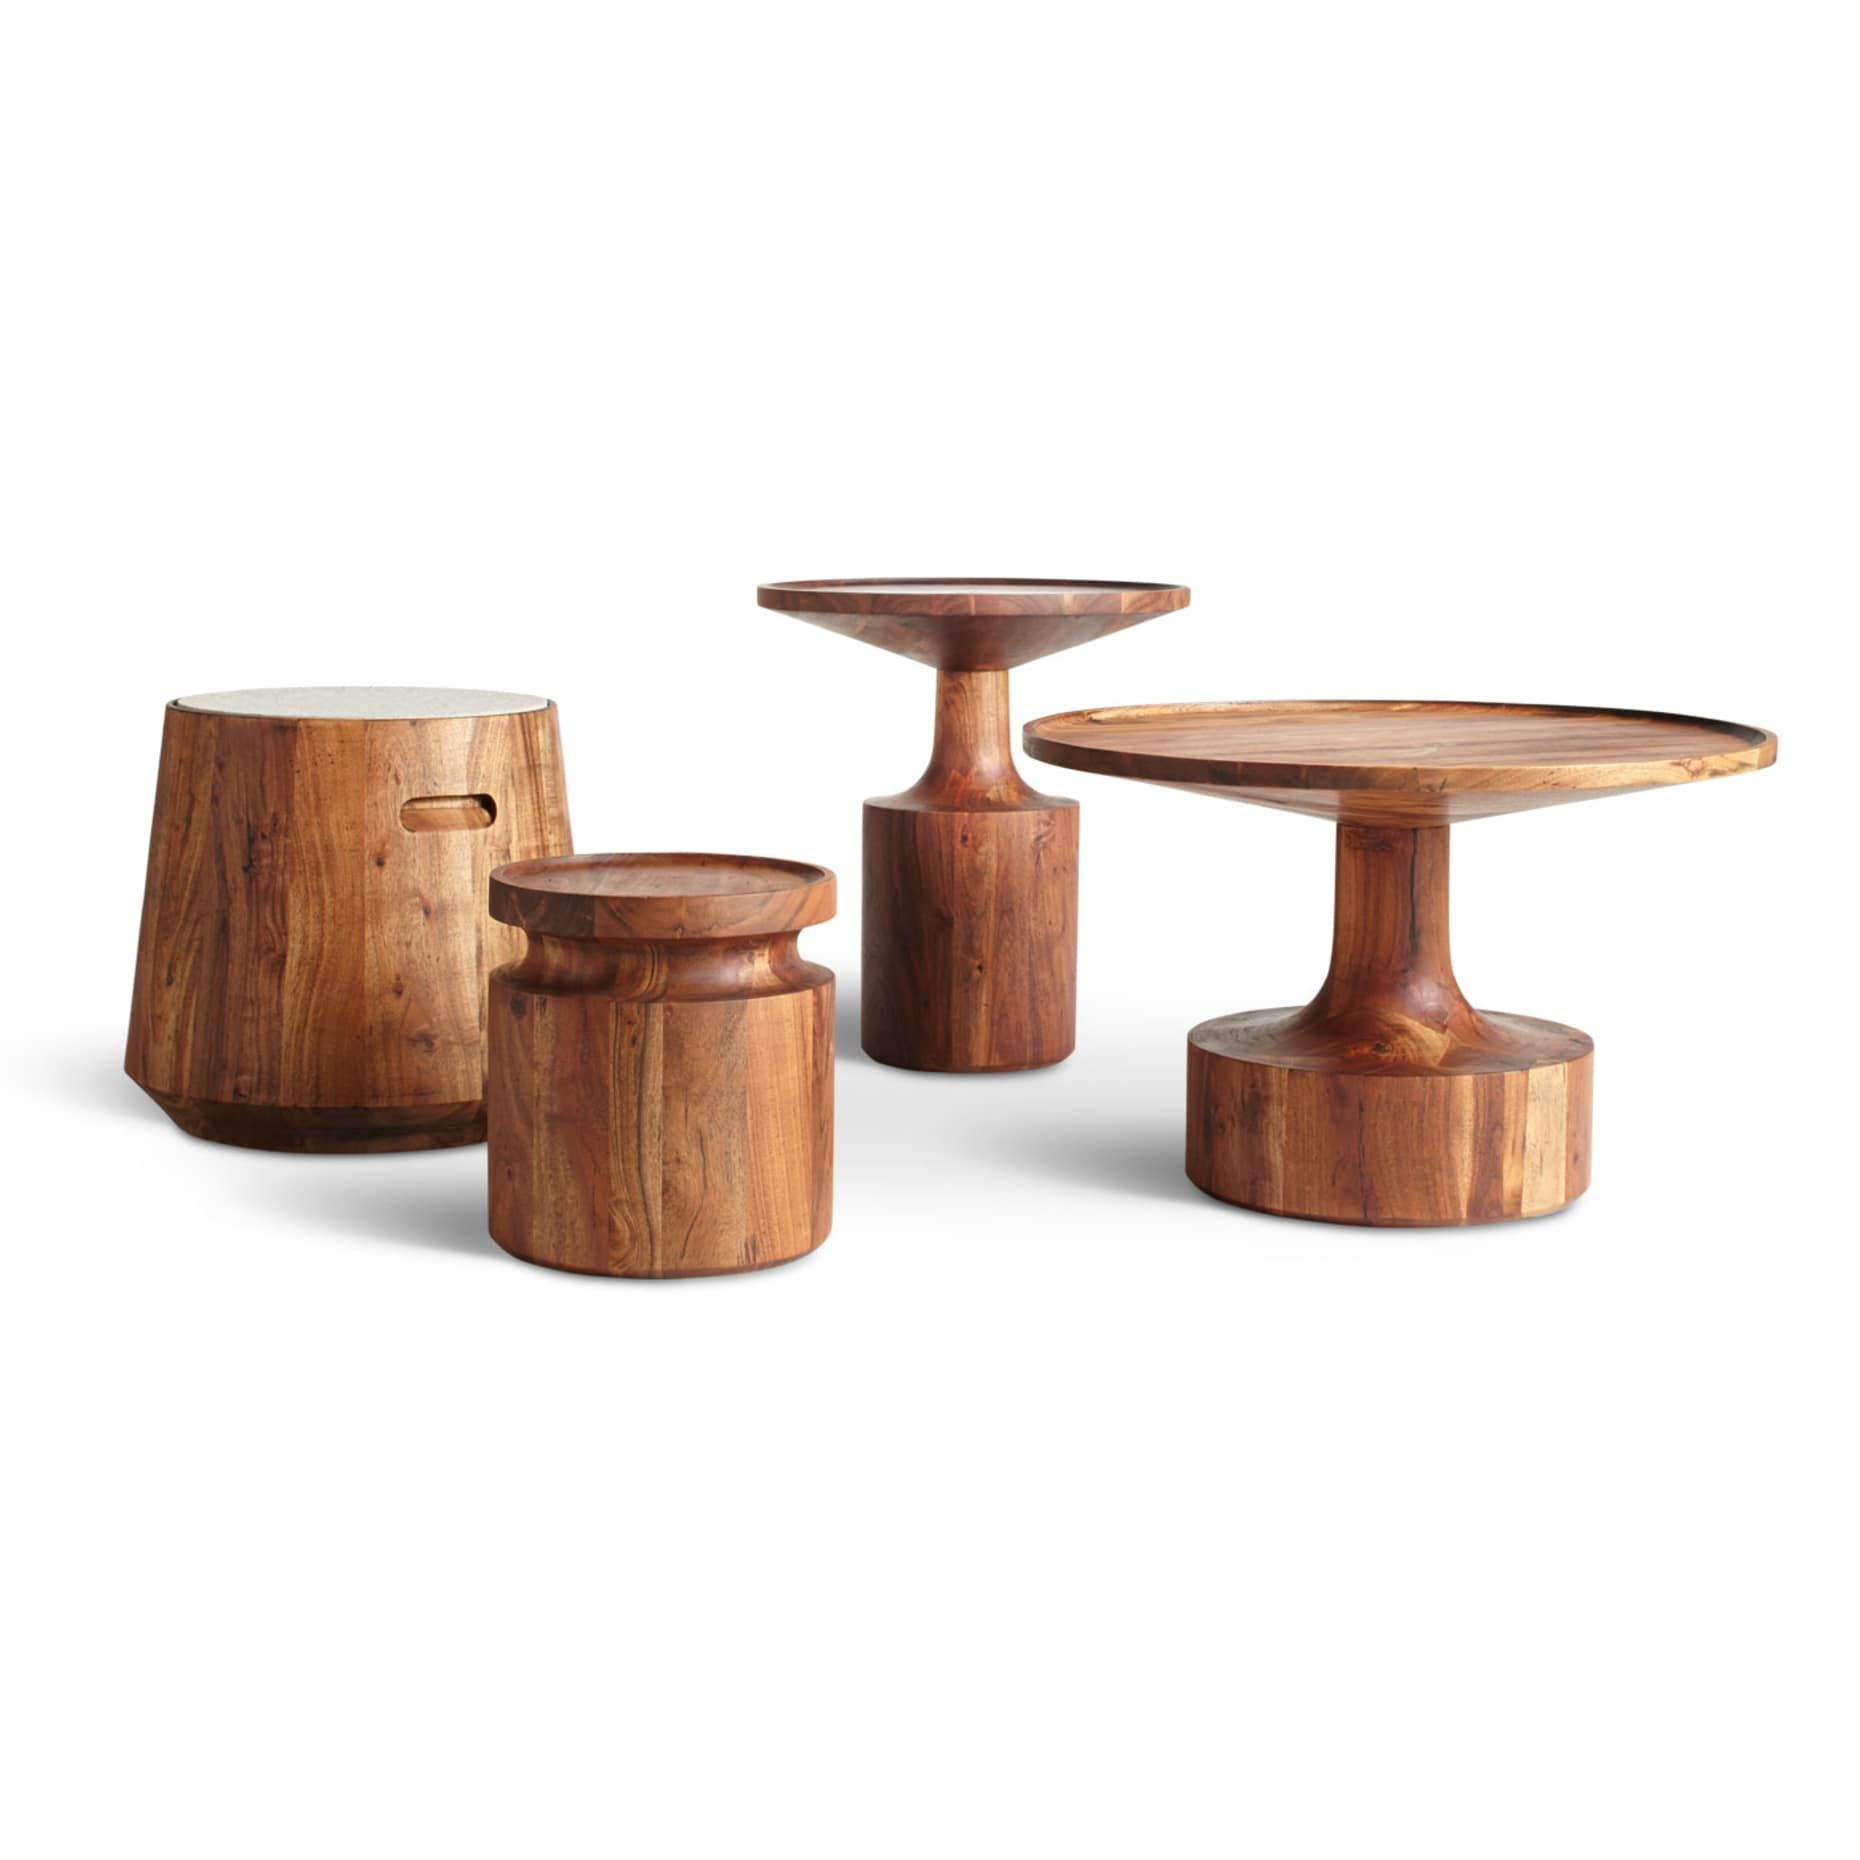 Turn Tall Side Table Side Table Wood Coffee Table Wood Round